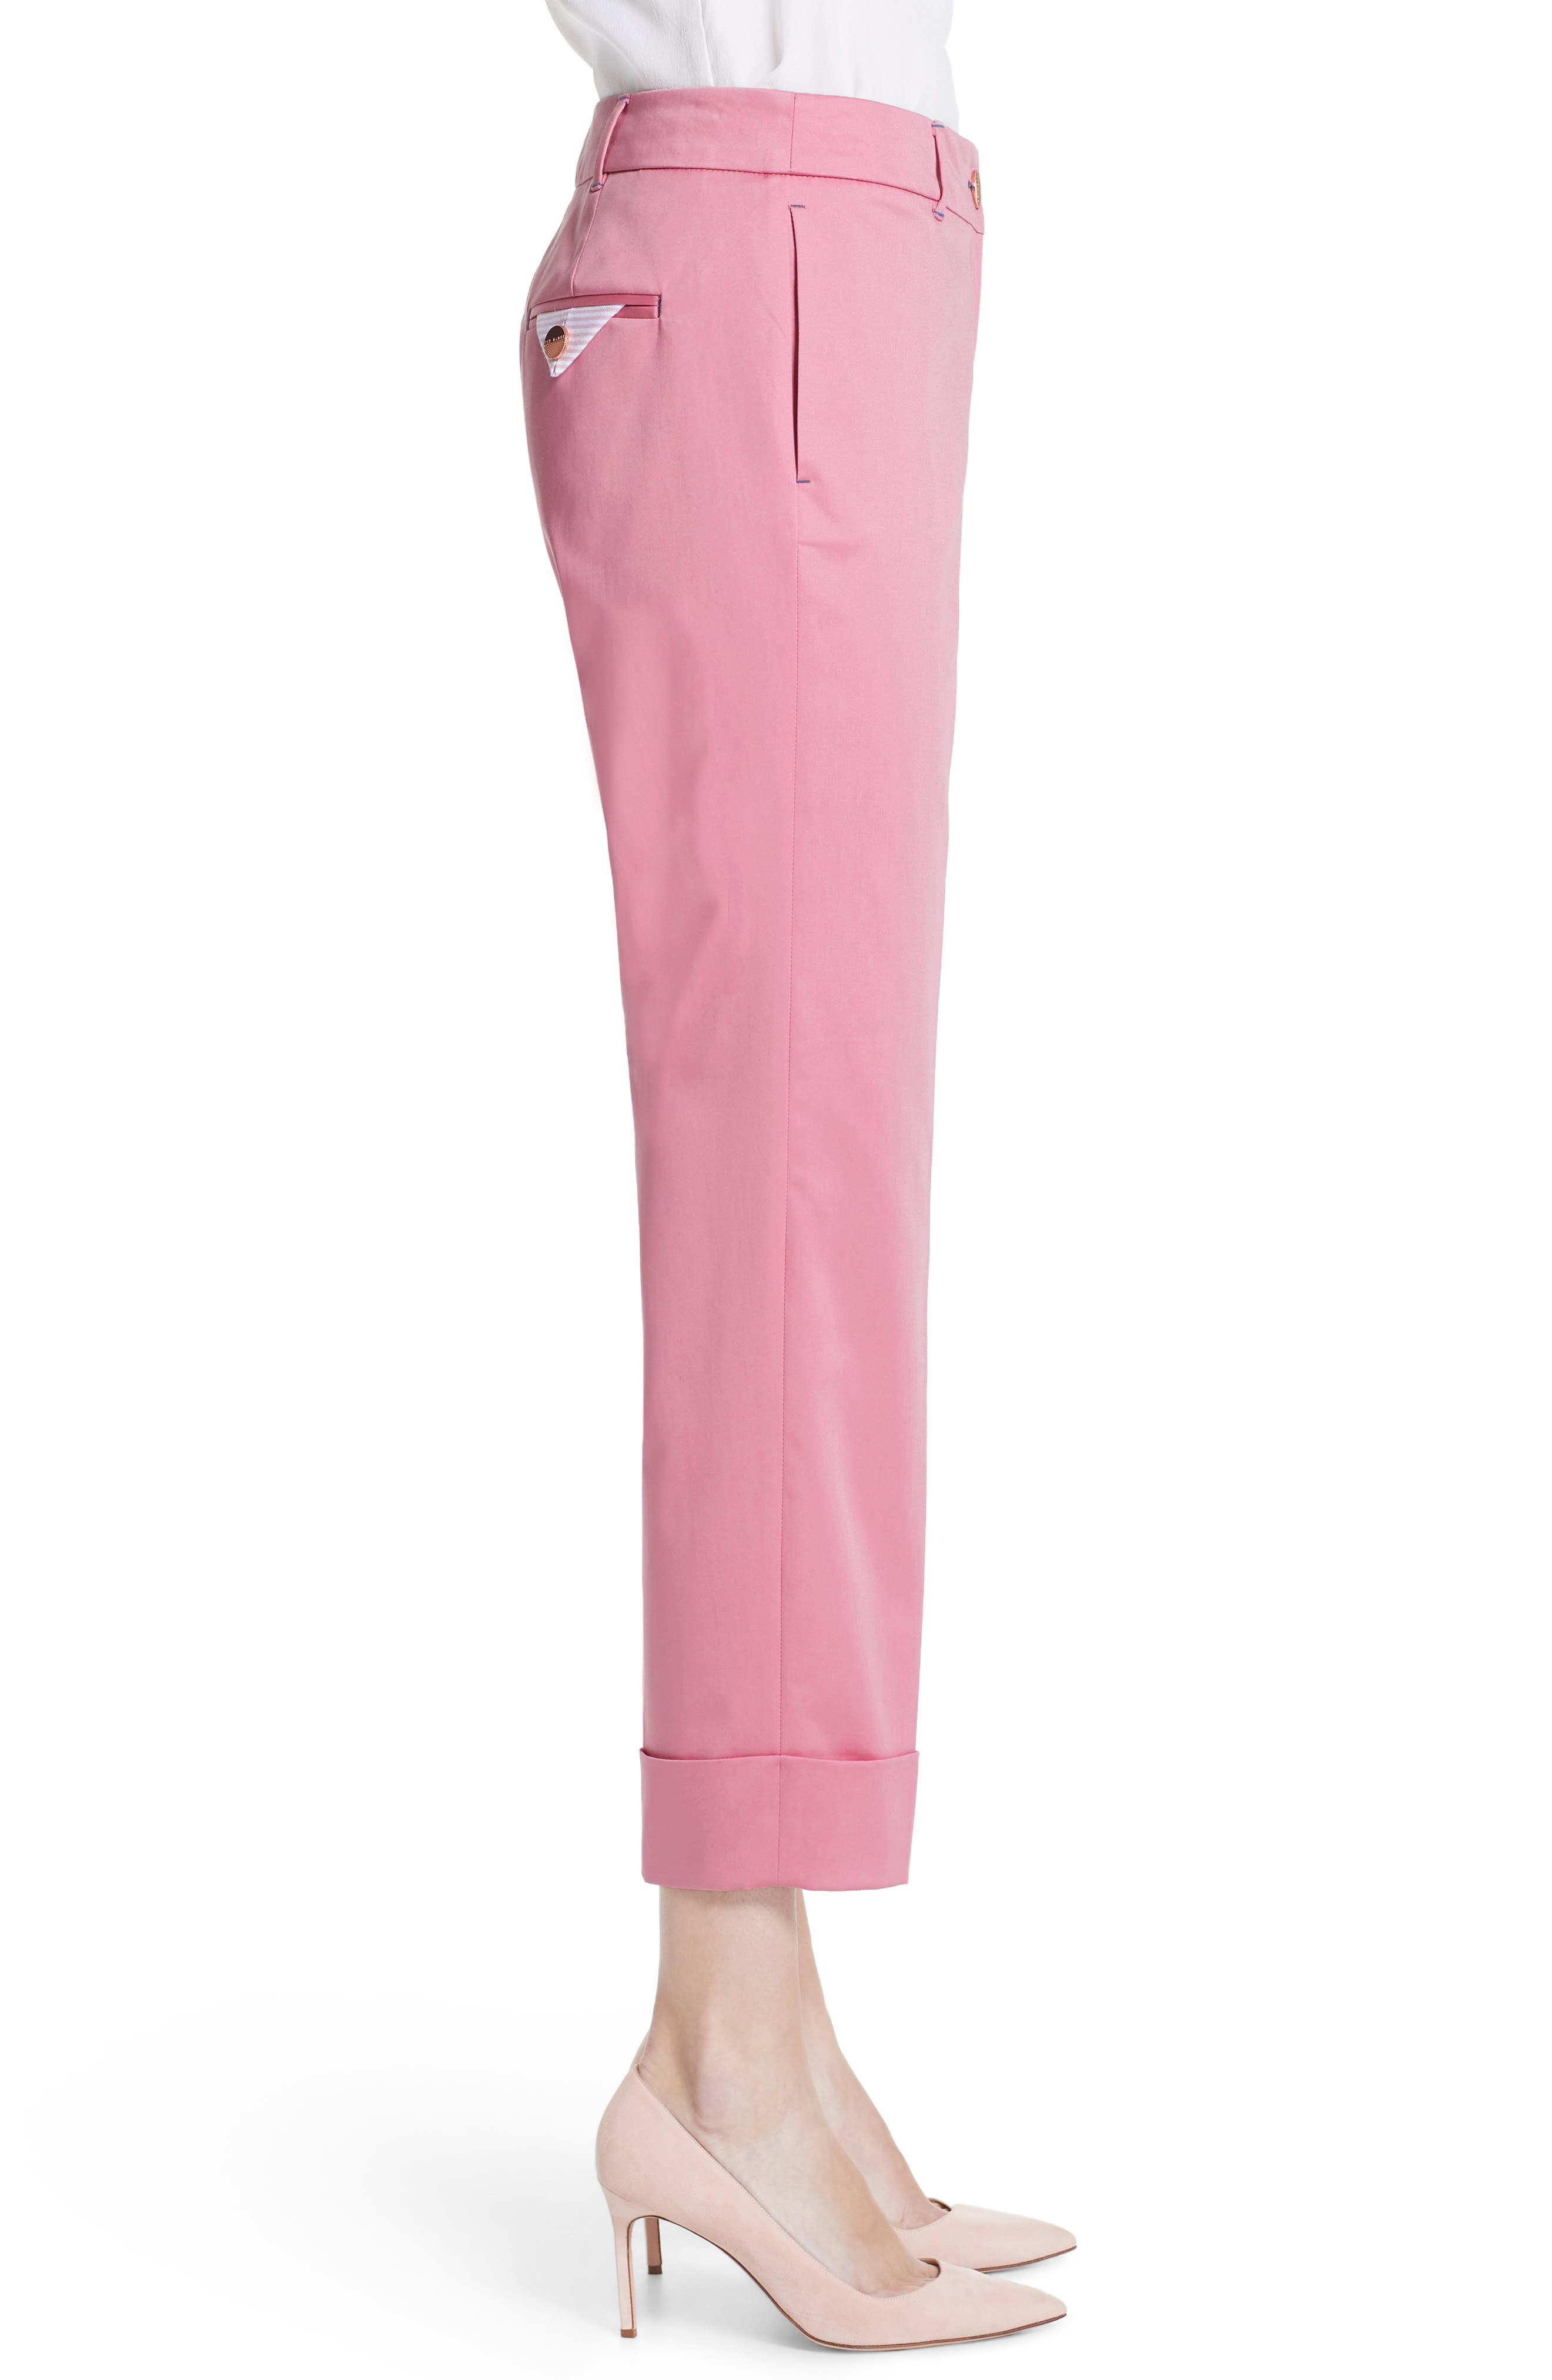 Saydii Deep Cuff Stretch Cotton Chino Pants,                             Alternate thumbnail 3, color,                             Dusky Pink